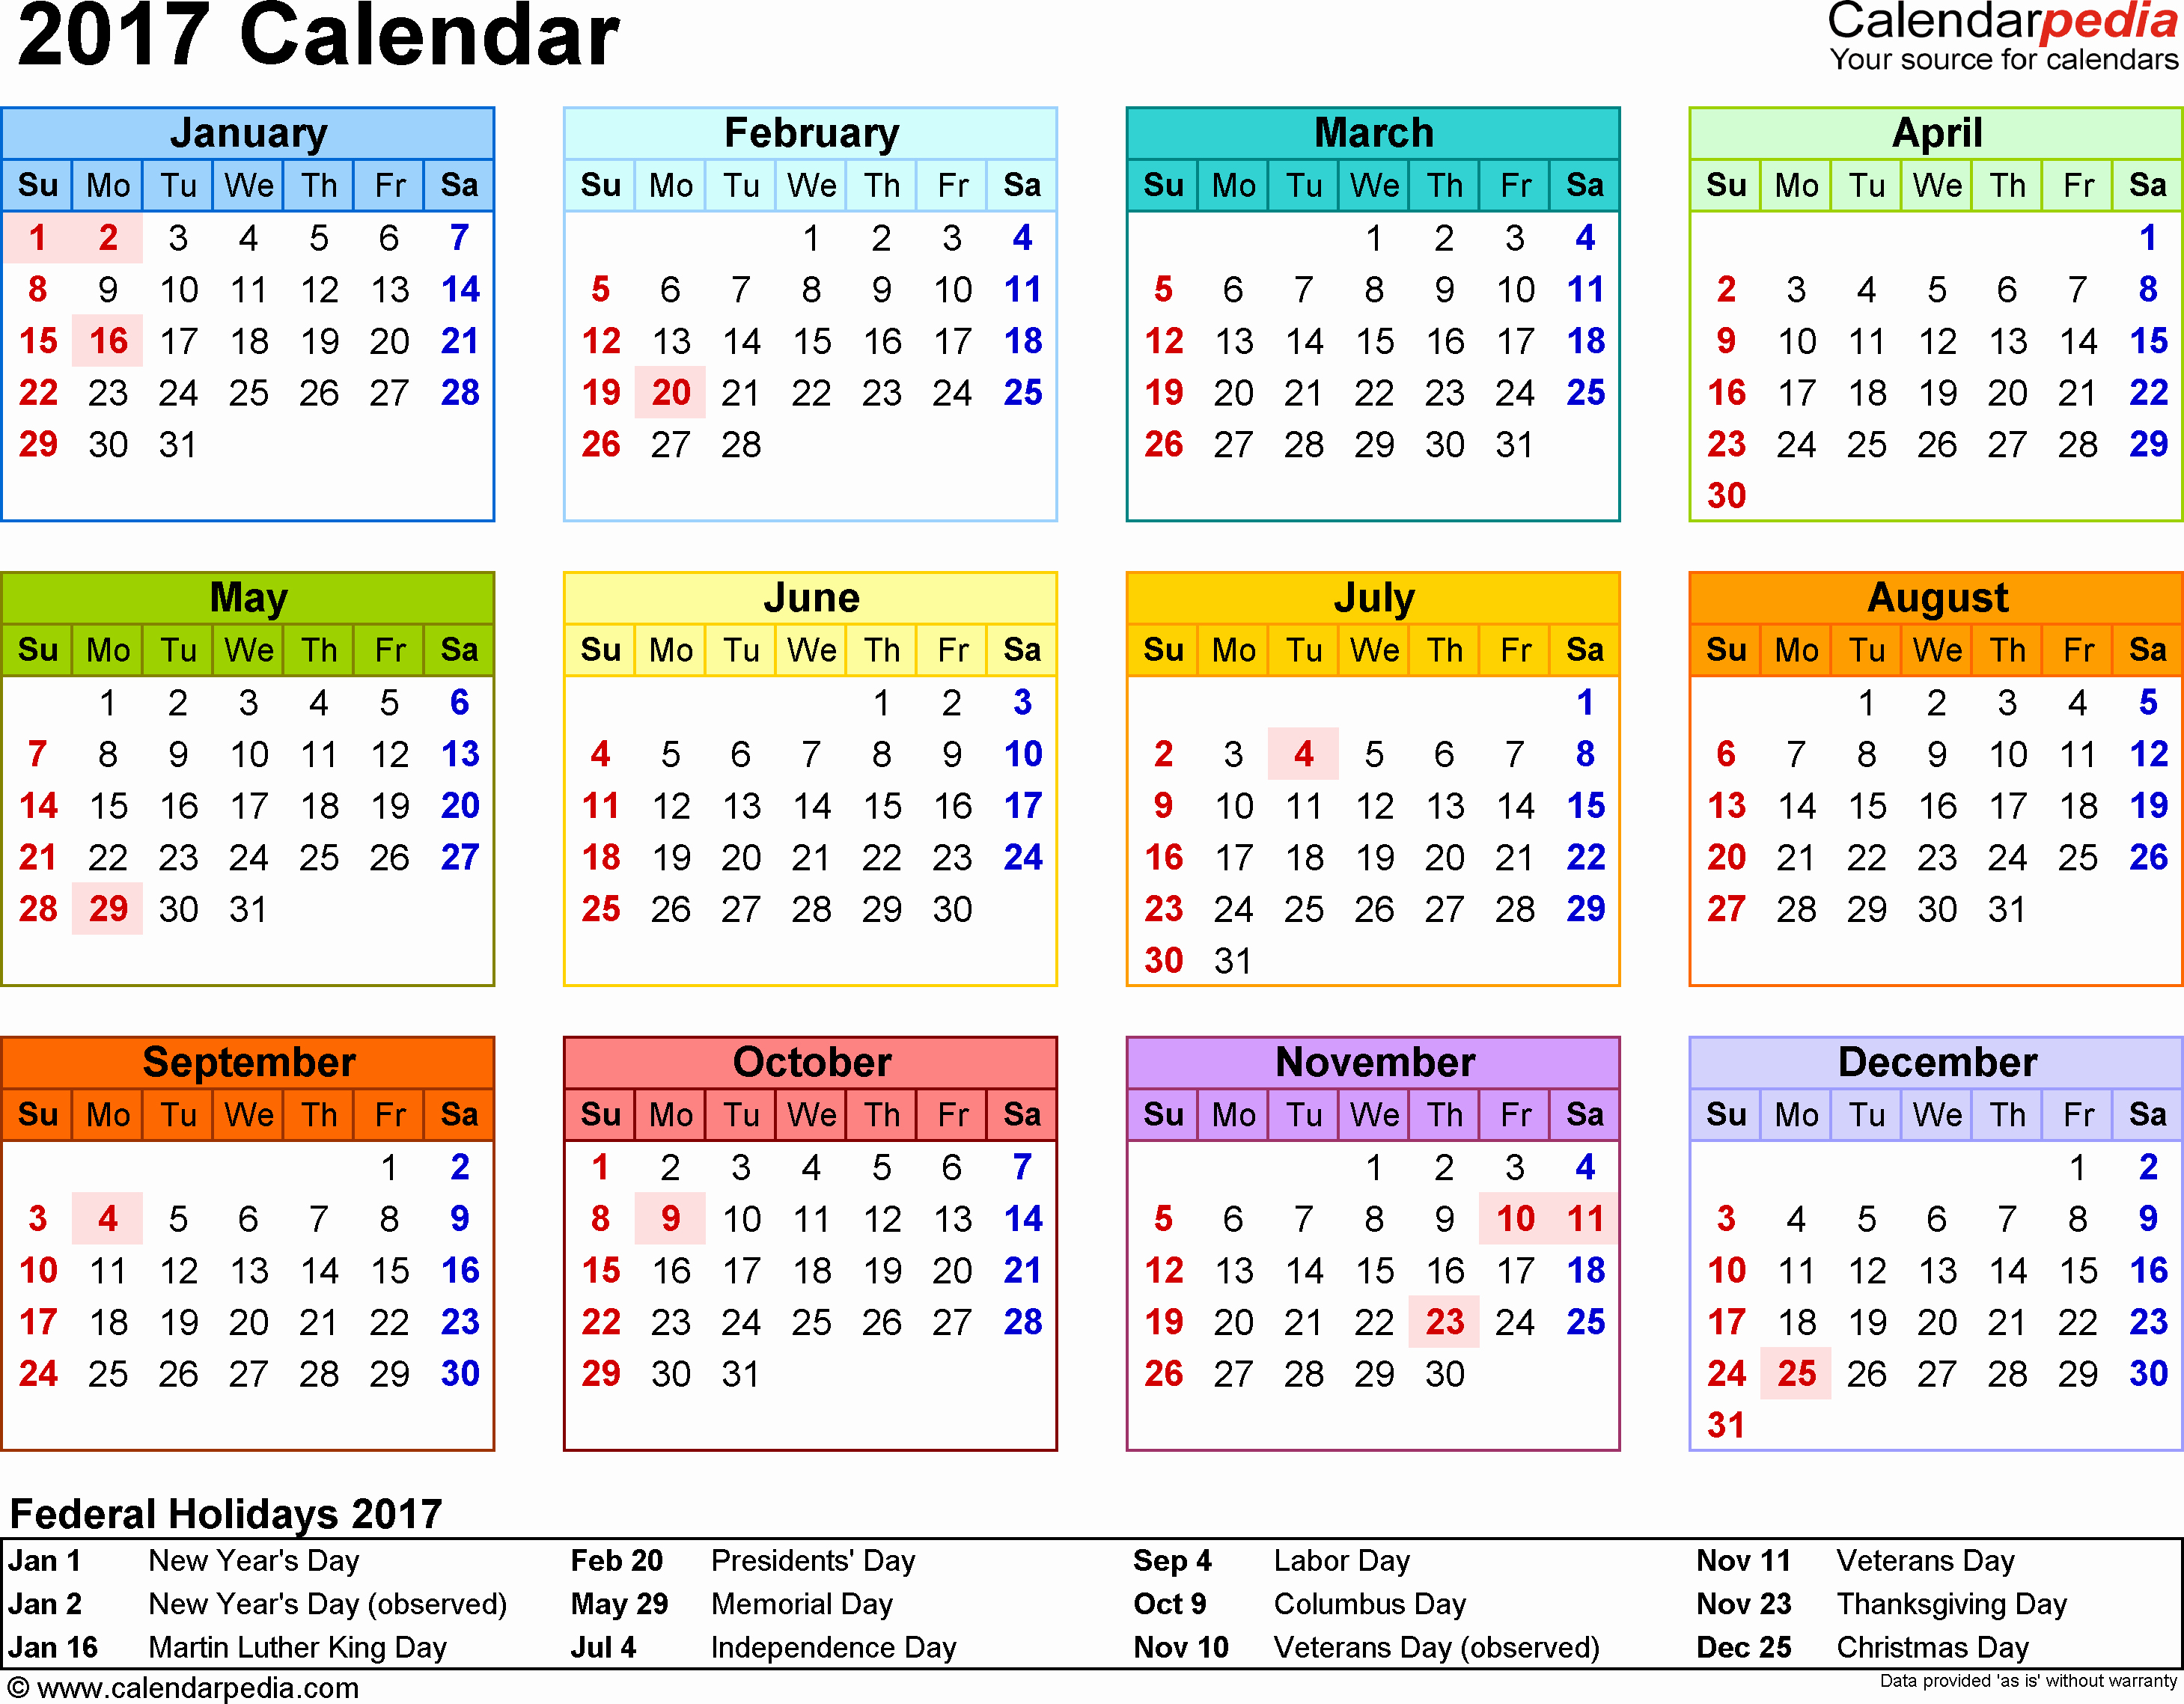 2017 Weekly Calendar with Holidays Inspirational Template 8 2017 Calendar for Word Year at A Glance 1